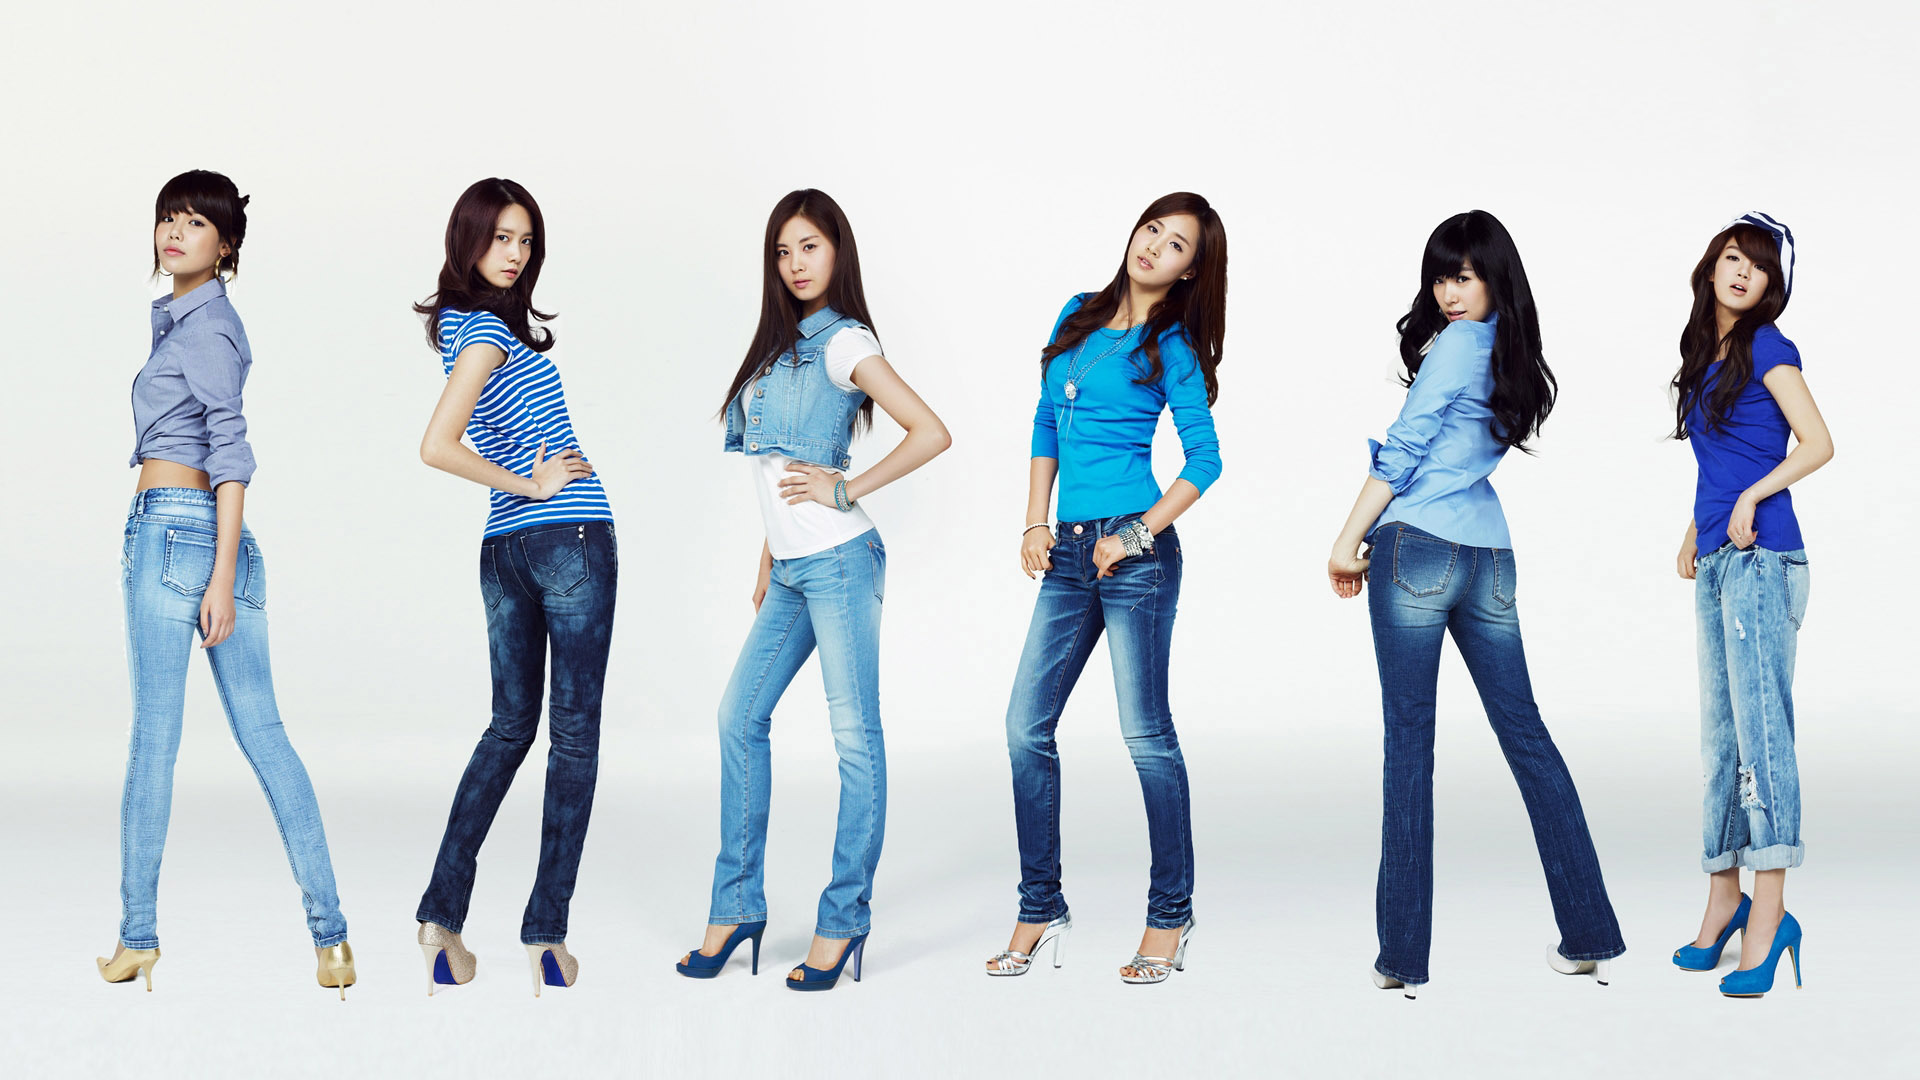 woman jeans Girls Generation